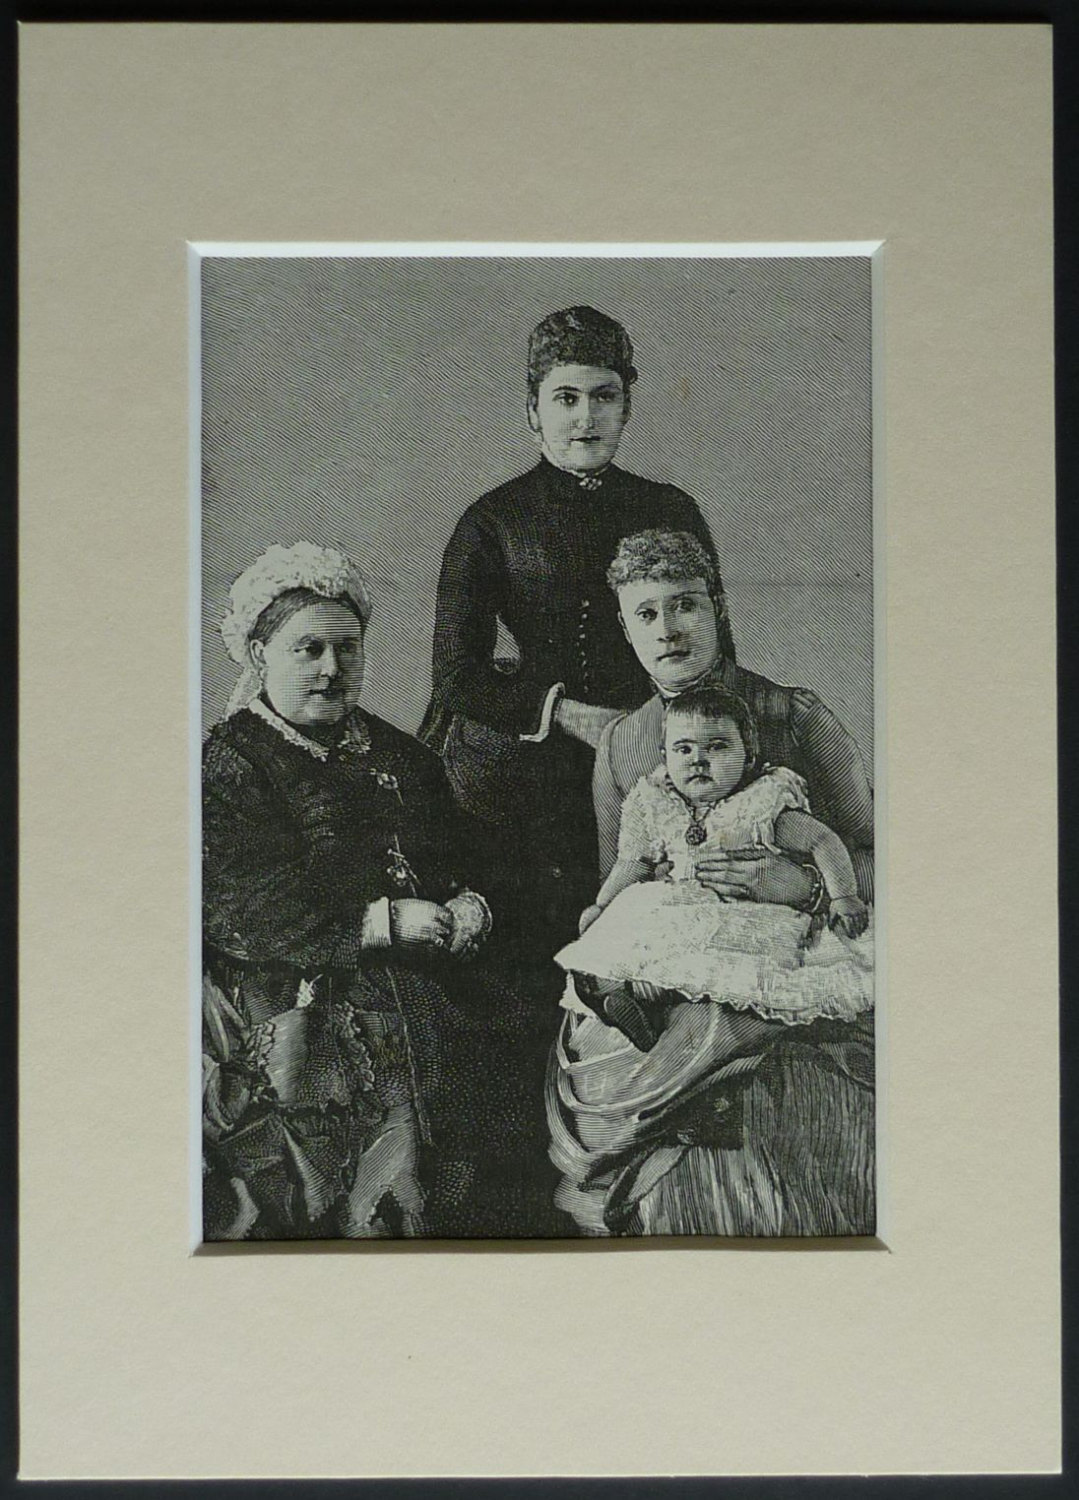 1880s Antique British Historical Print of Four Generations of Royalty - 19th century Queen Victoria portrait, Victorian wood engraving art